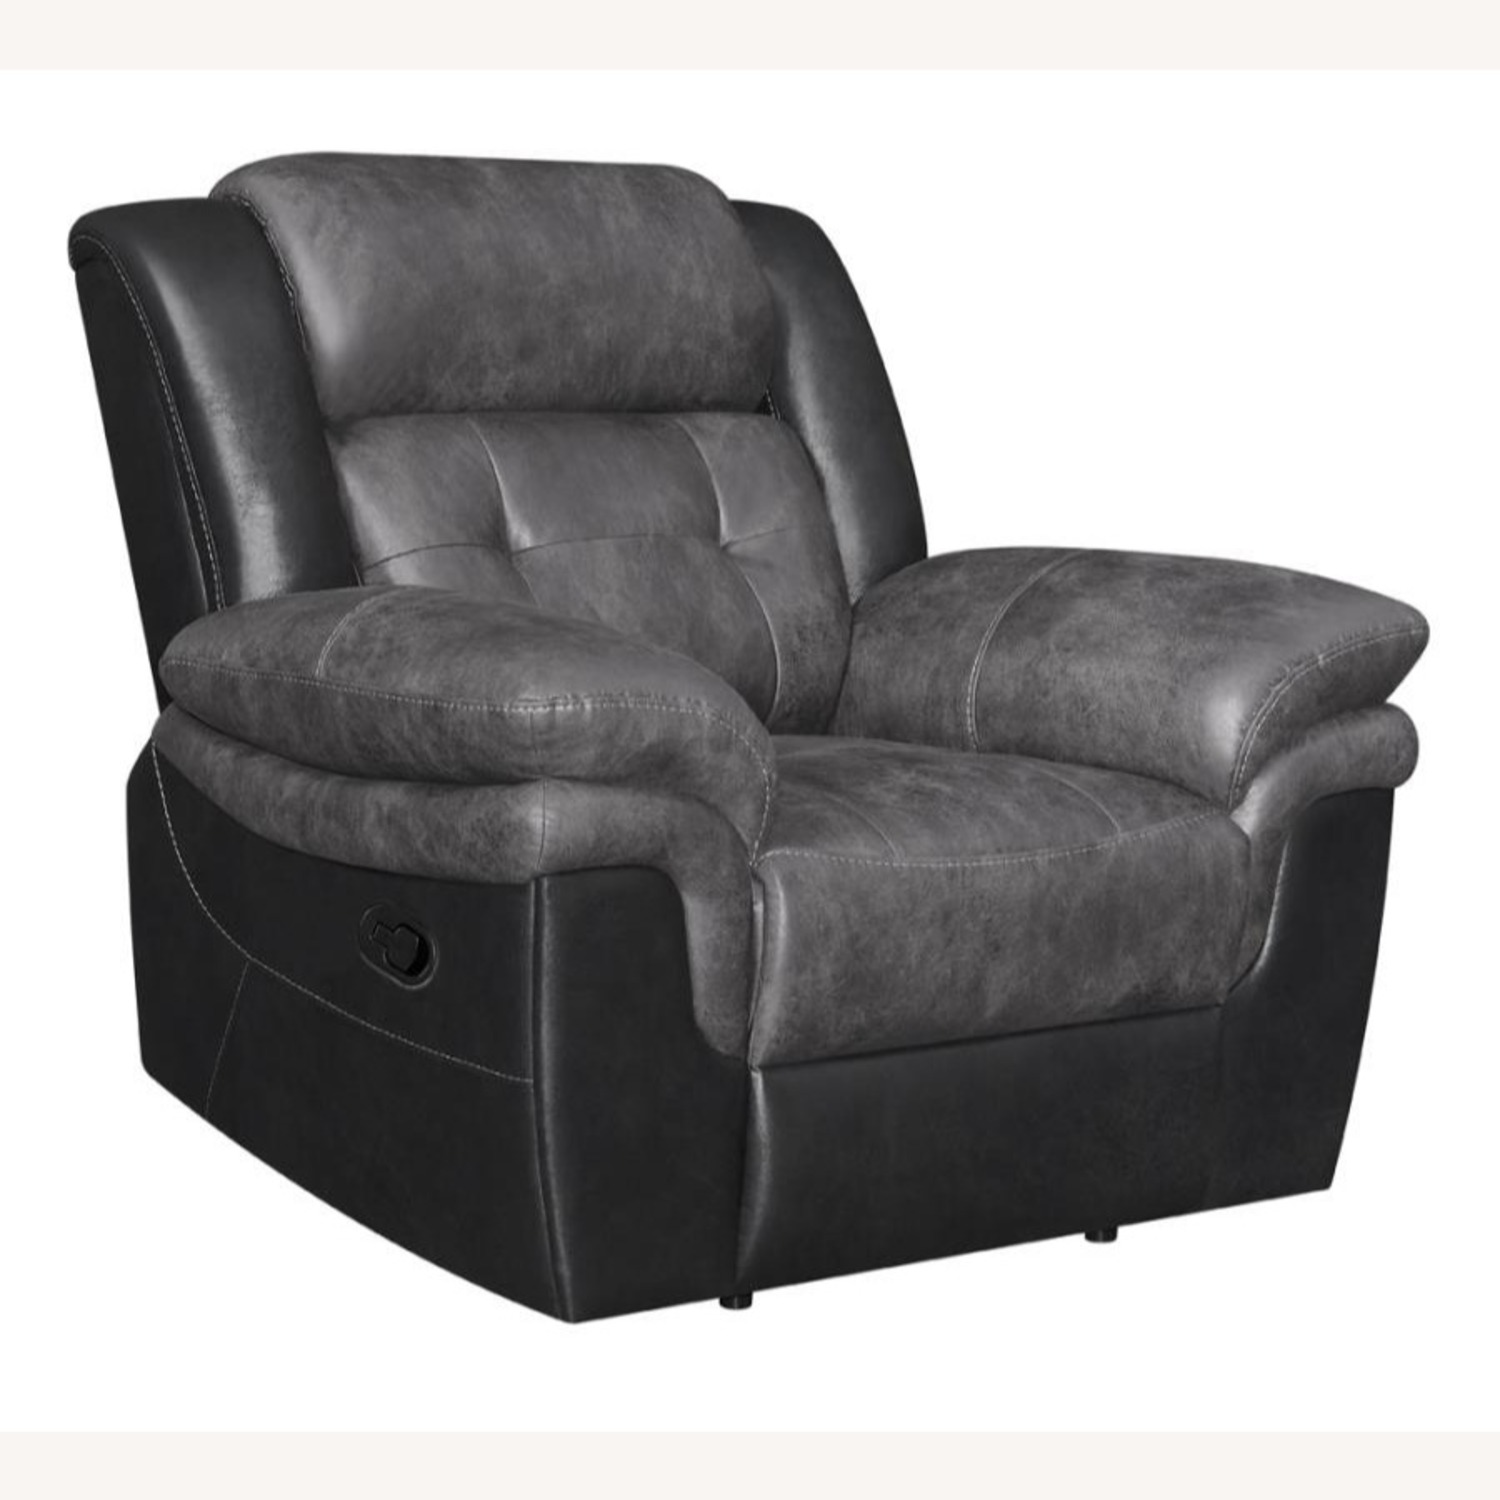 Recliner In Two-Tone Charcoal & Black Upholstery - image-0